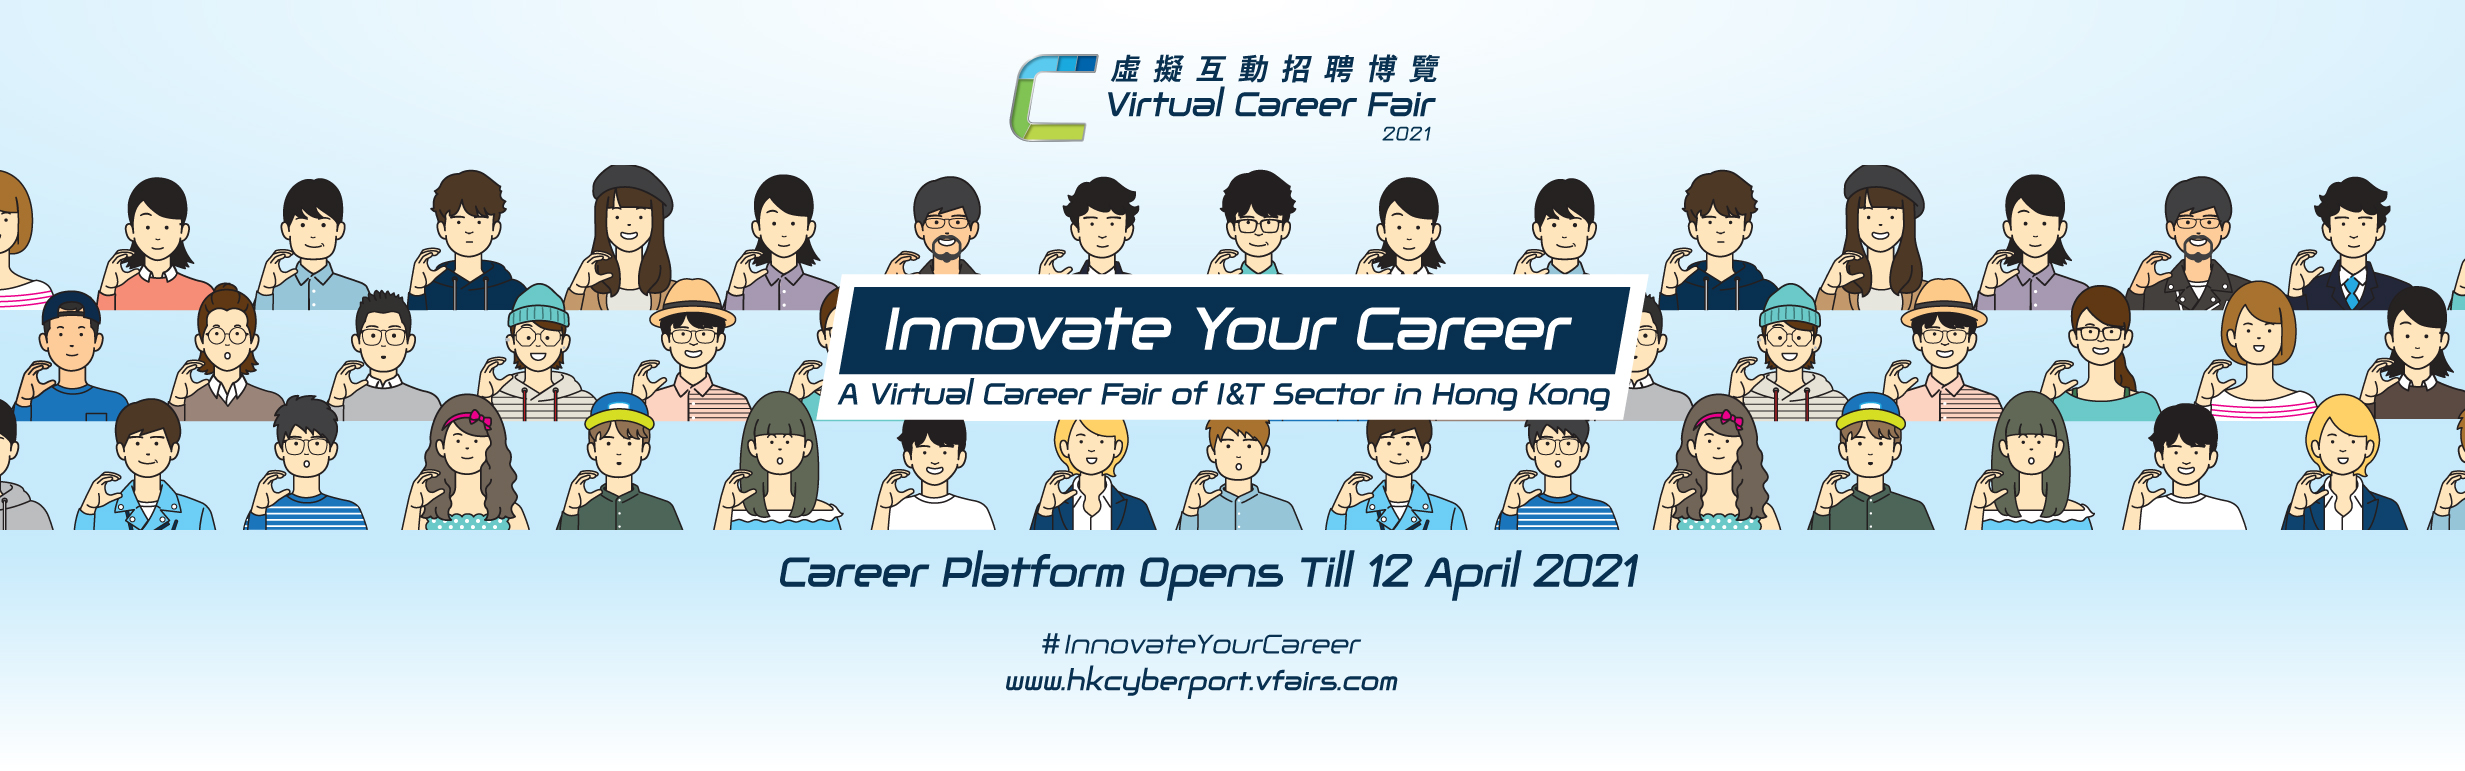 Cyberport Virtual Career Fair 2021